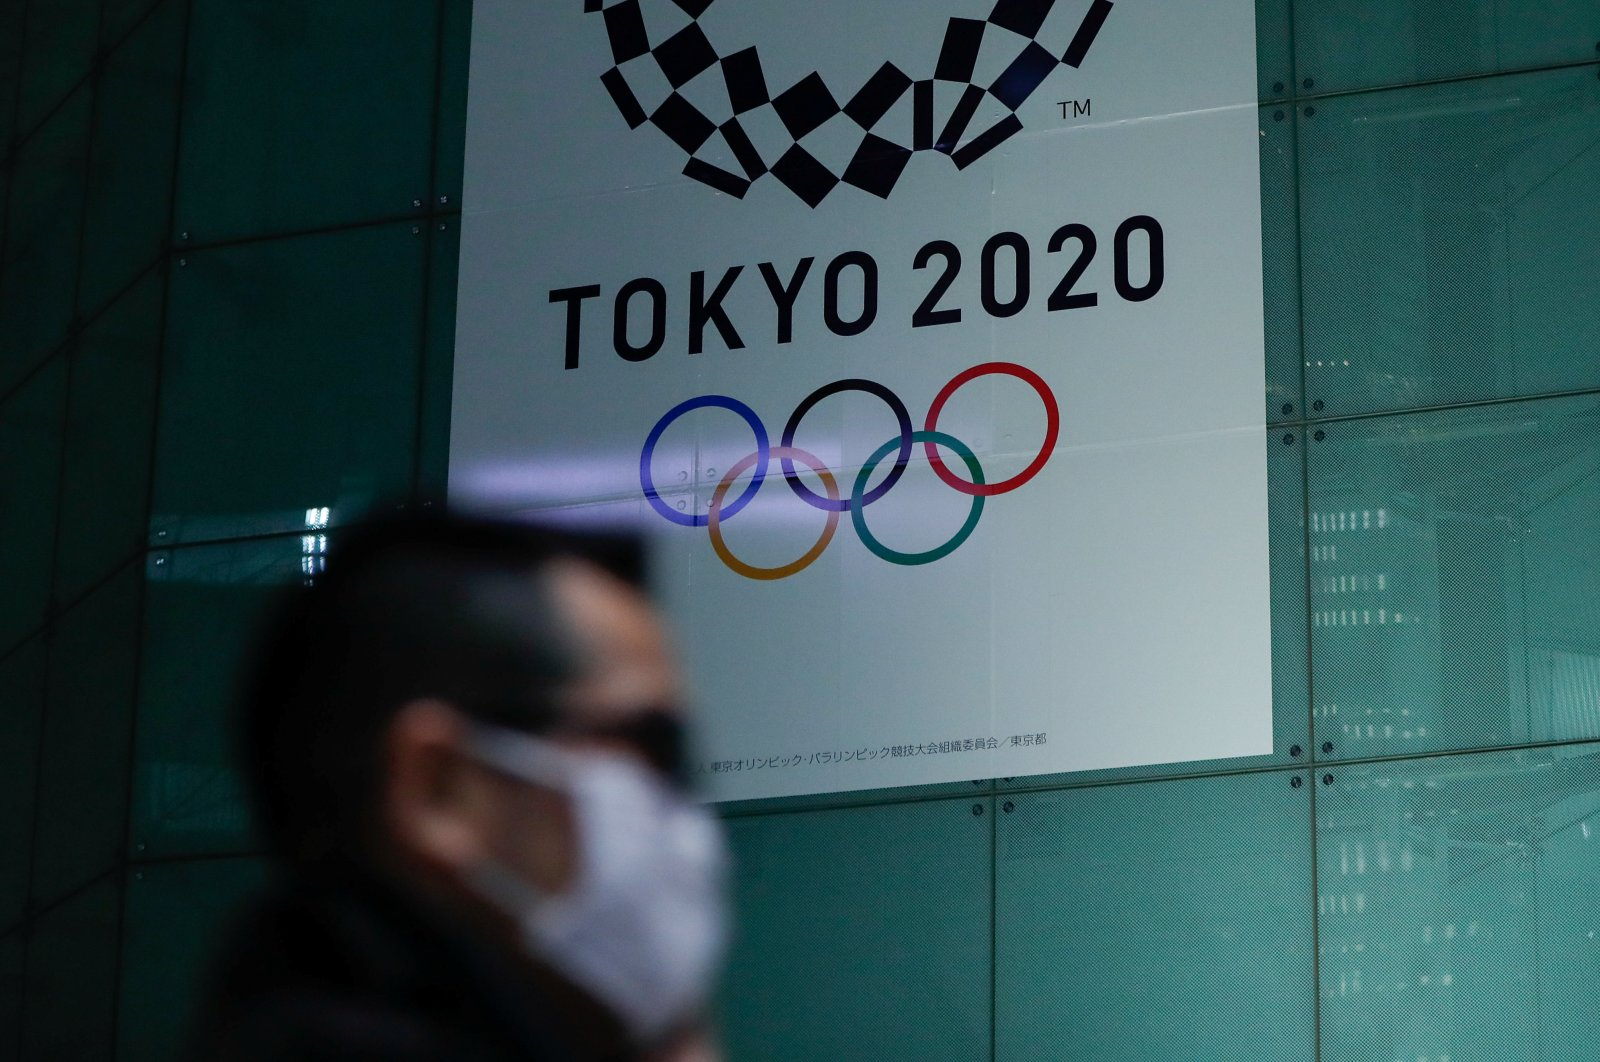 A man wearing a protective face mask walks past a banner for Tokyo 2020 Olympics in Tokyo, March 11, 2020. (Reuters Photo)